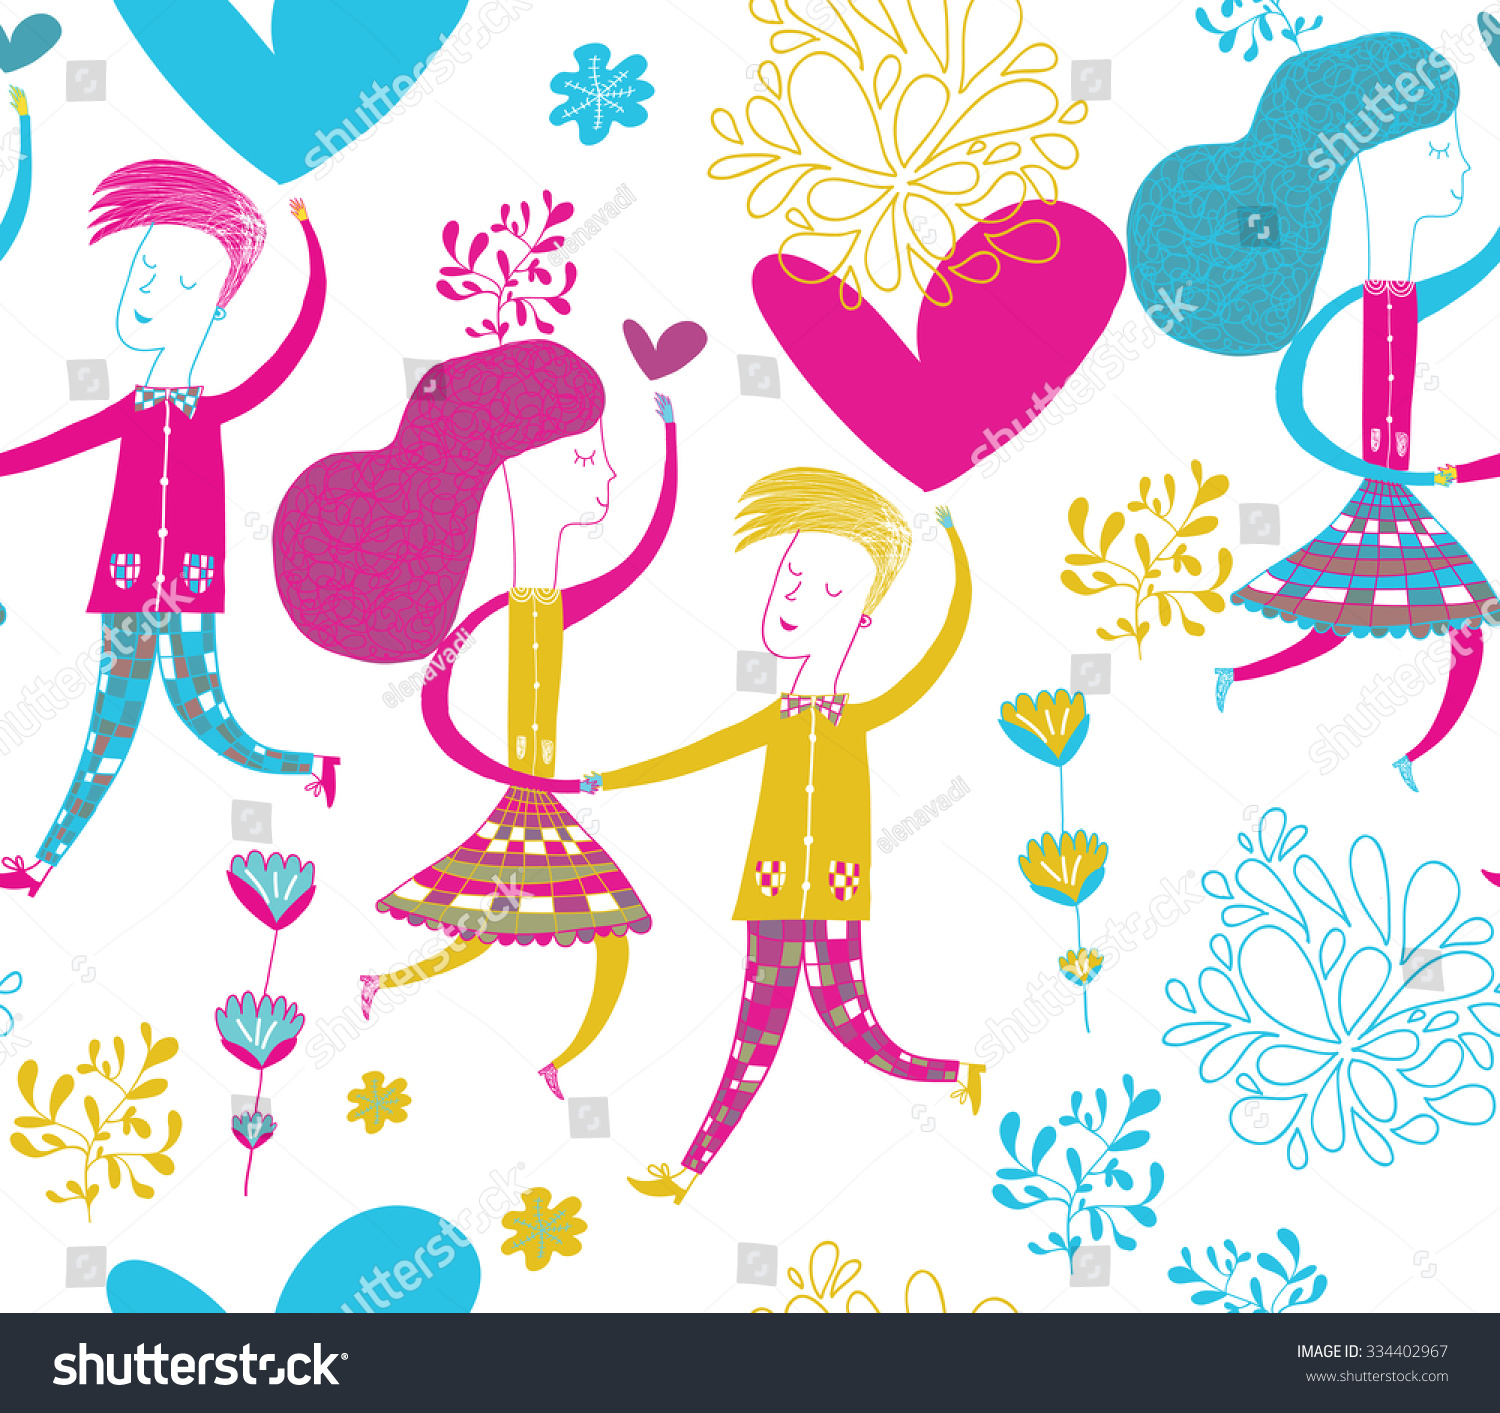 Dancing couple love vector modern seamless stock vector 334402967 dancing couple in love in vector modern seamless pattern for greeting cards packaging kristyandbryce Gallery